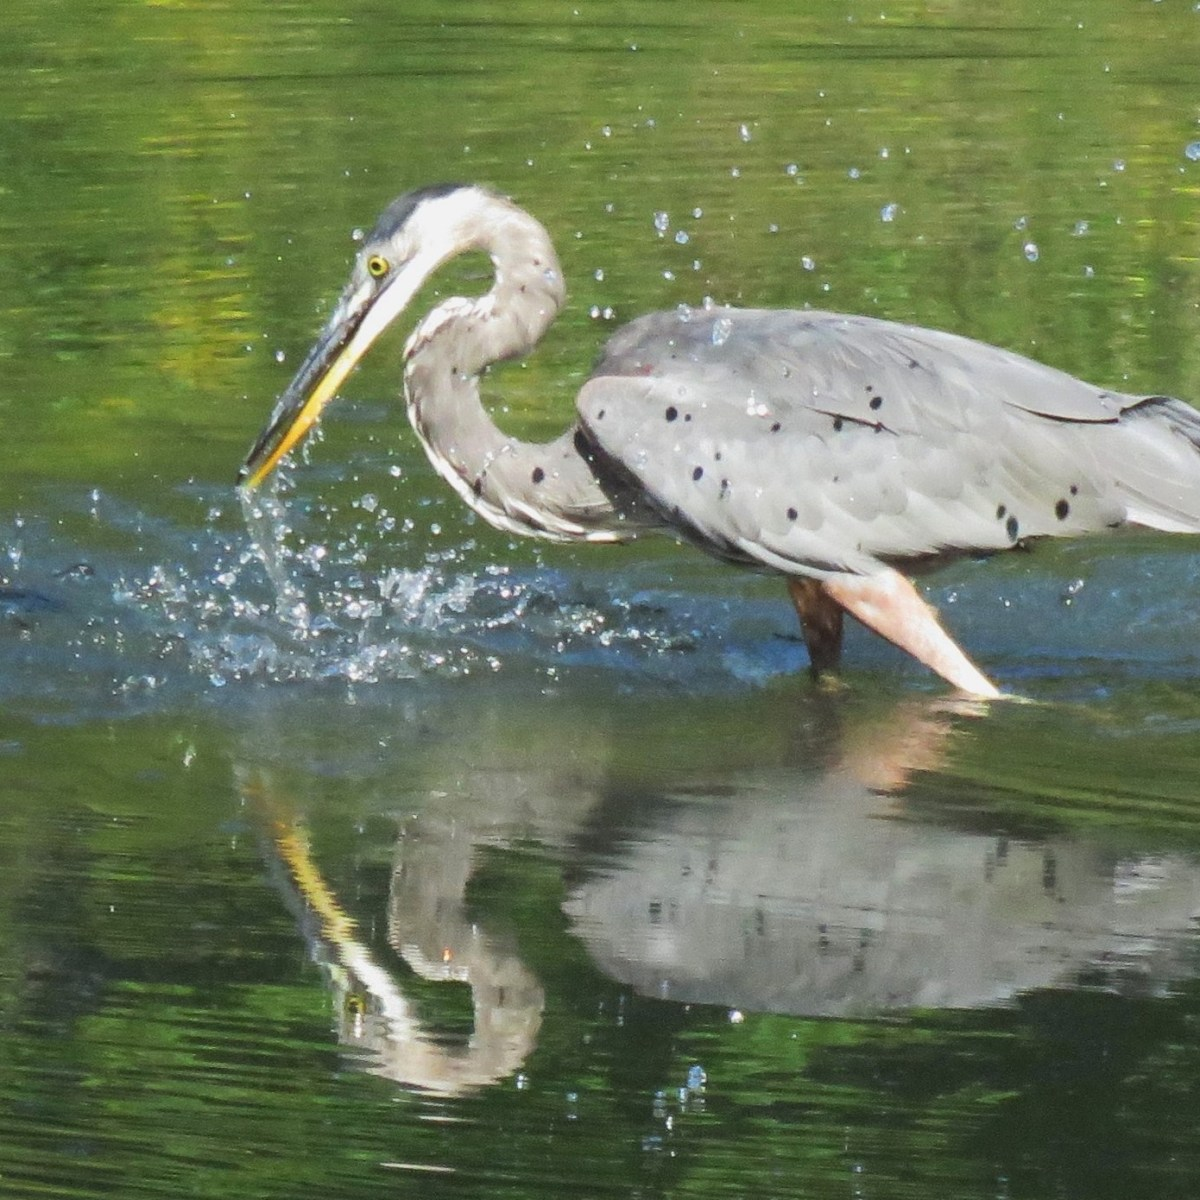 A Great Blue Heron stabs its beak down into the water creating a splash